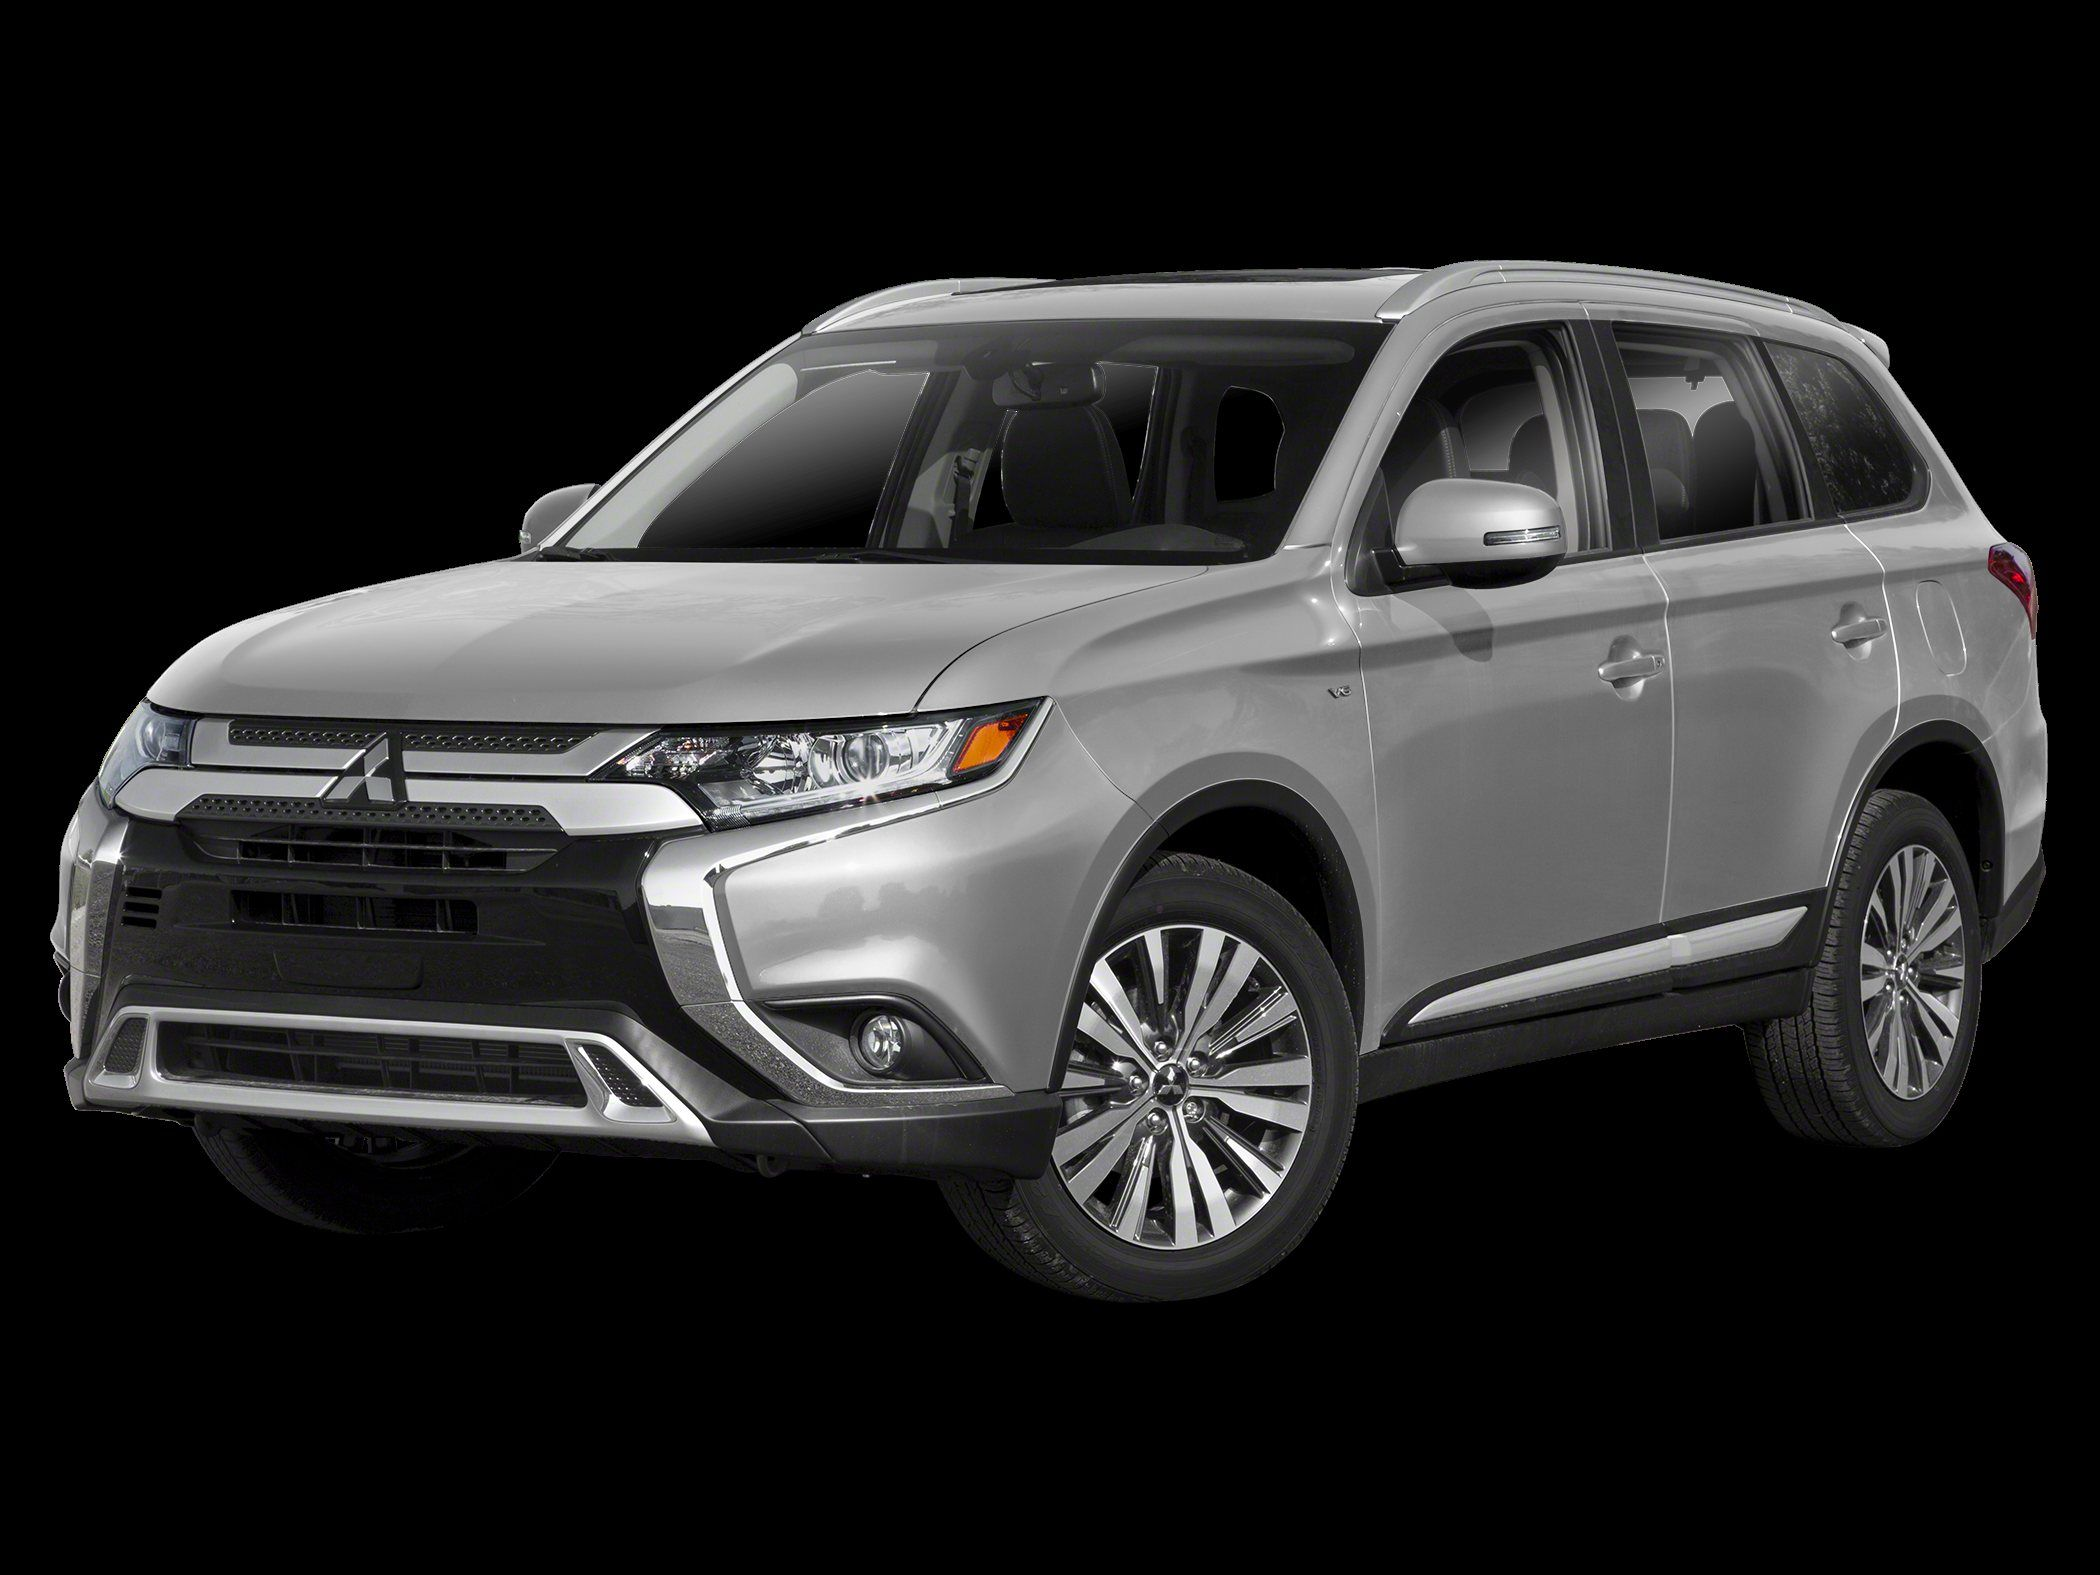 2020 Mitsubishi Outlander Sport Picture in 2020